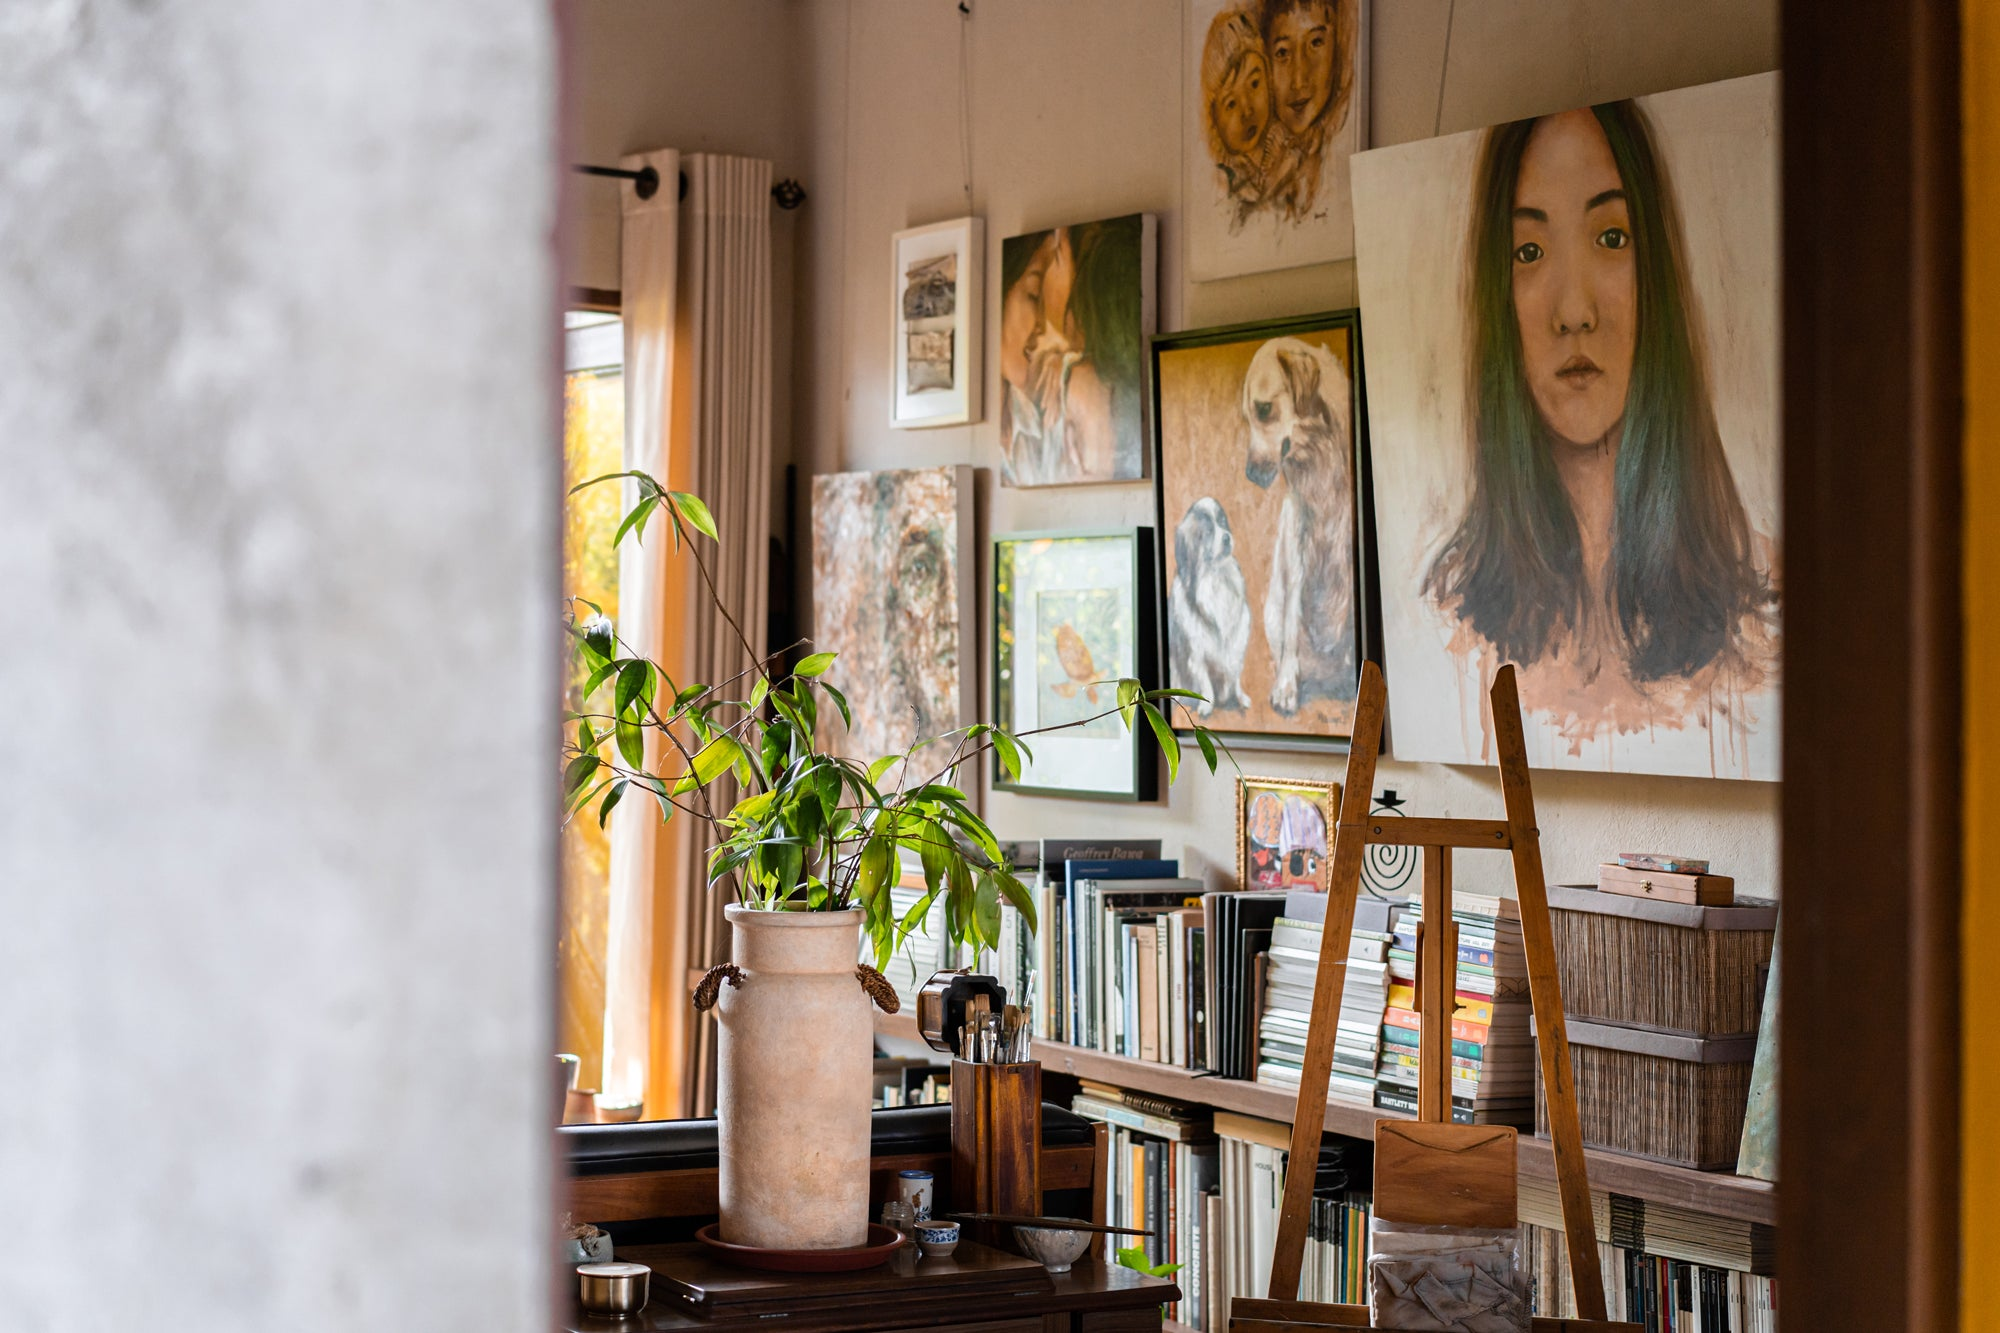 paintings hung up on room wall